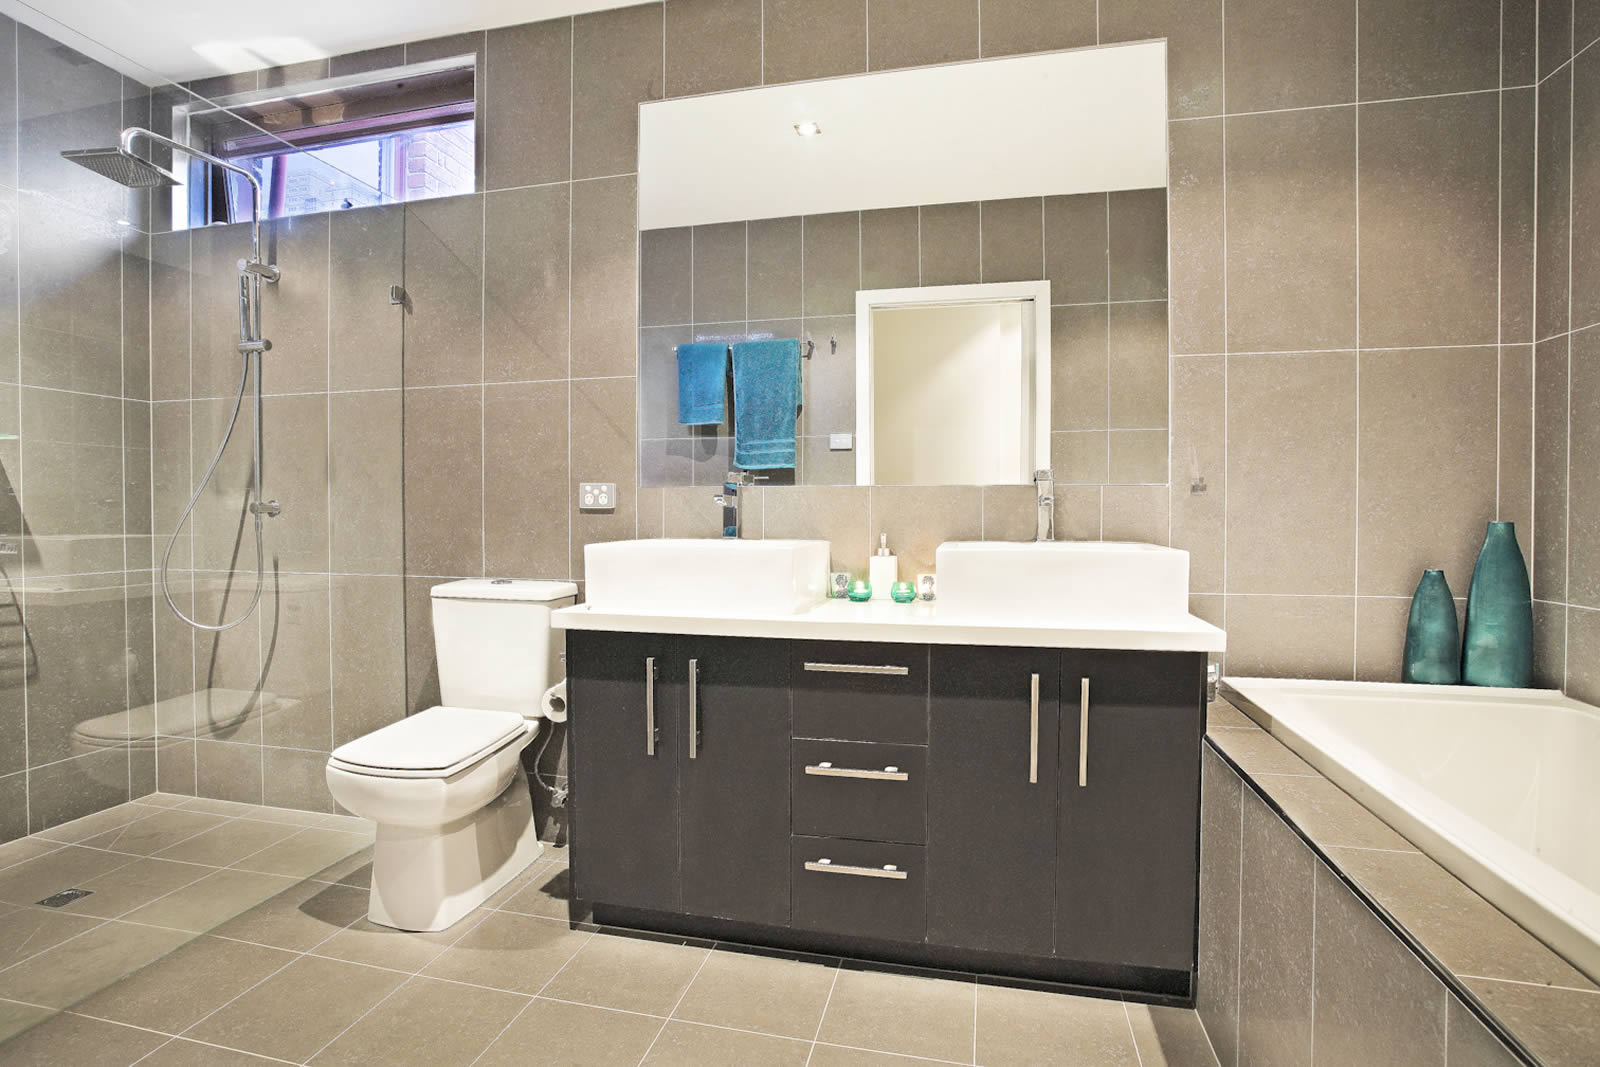 designer bathrooms melbourne australia